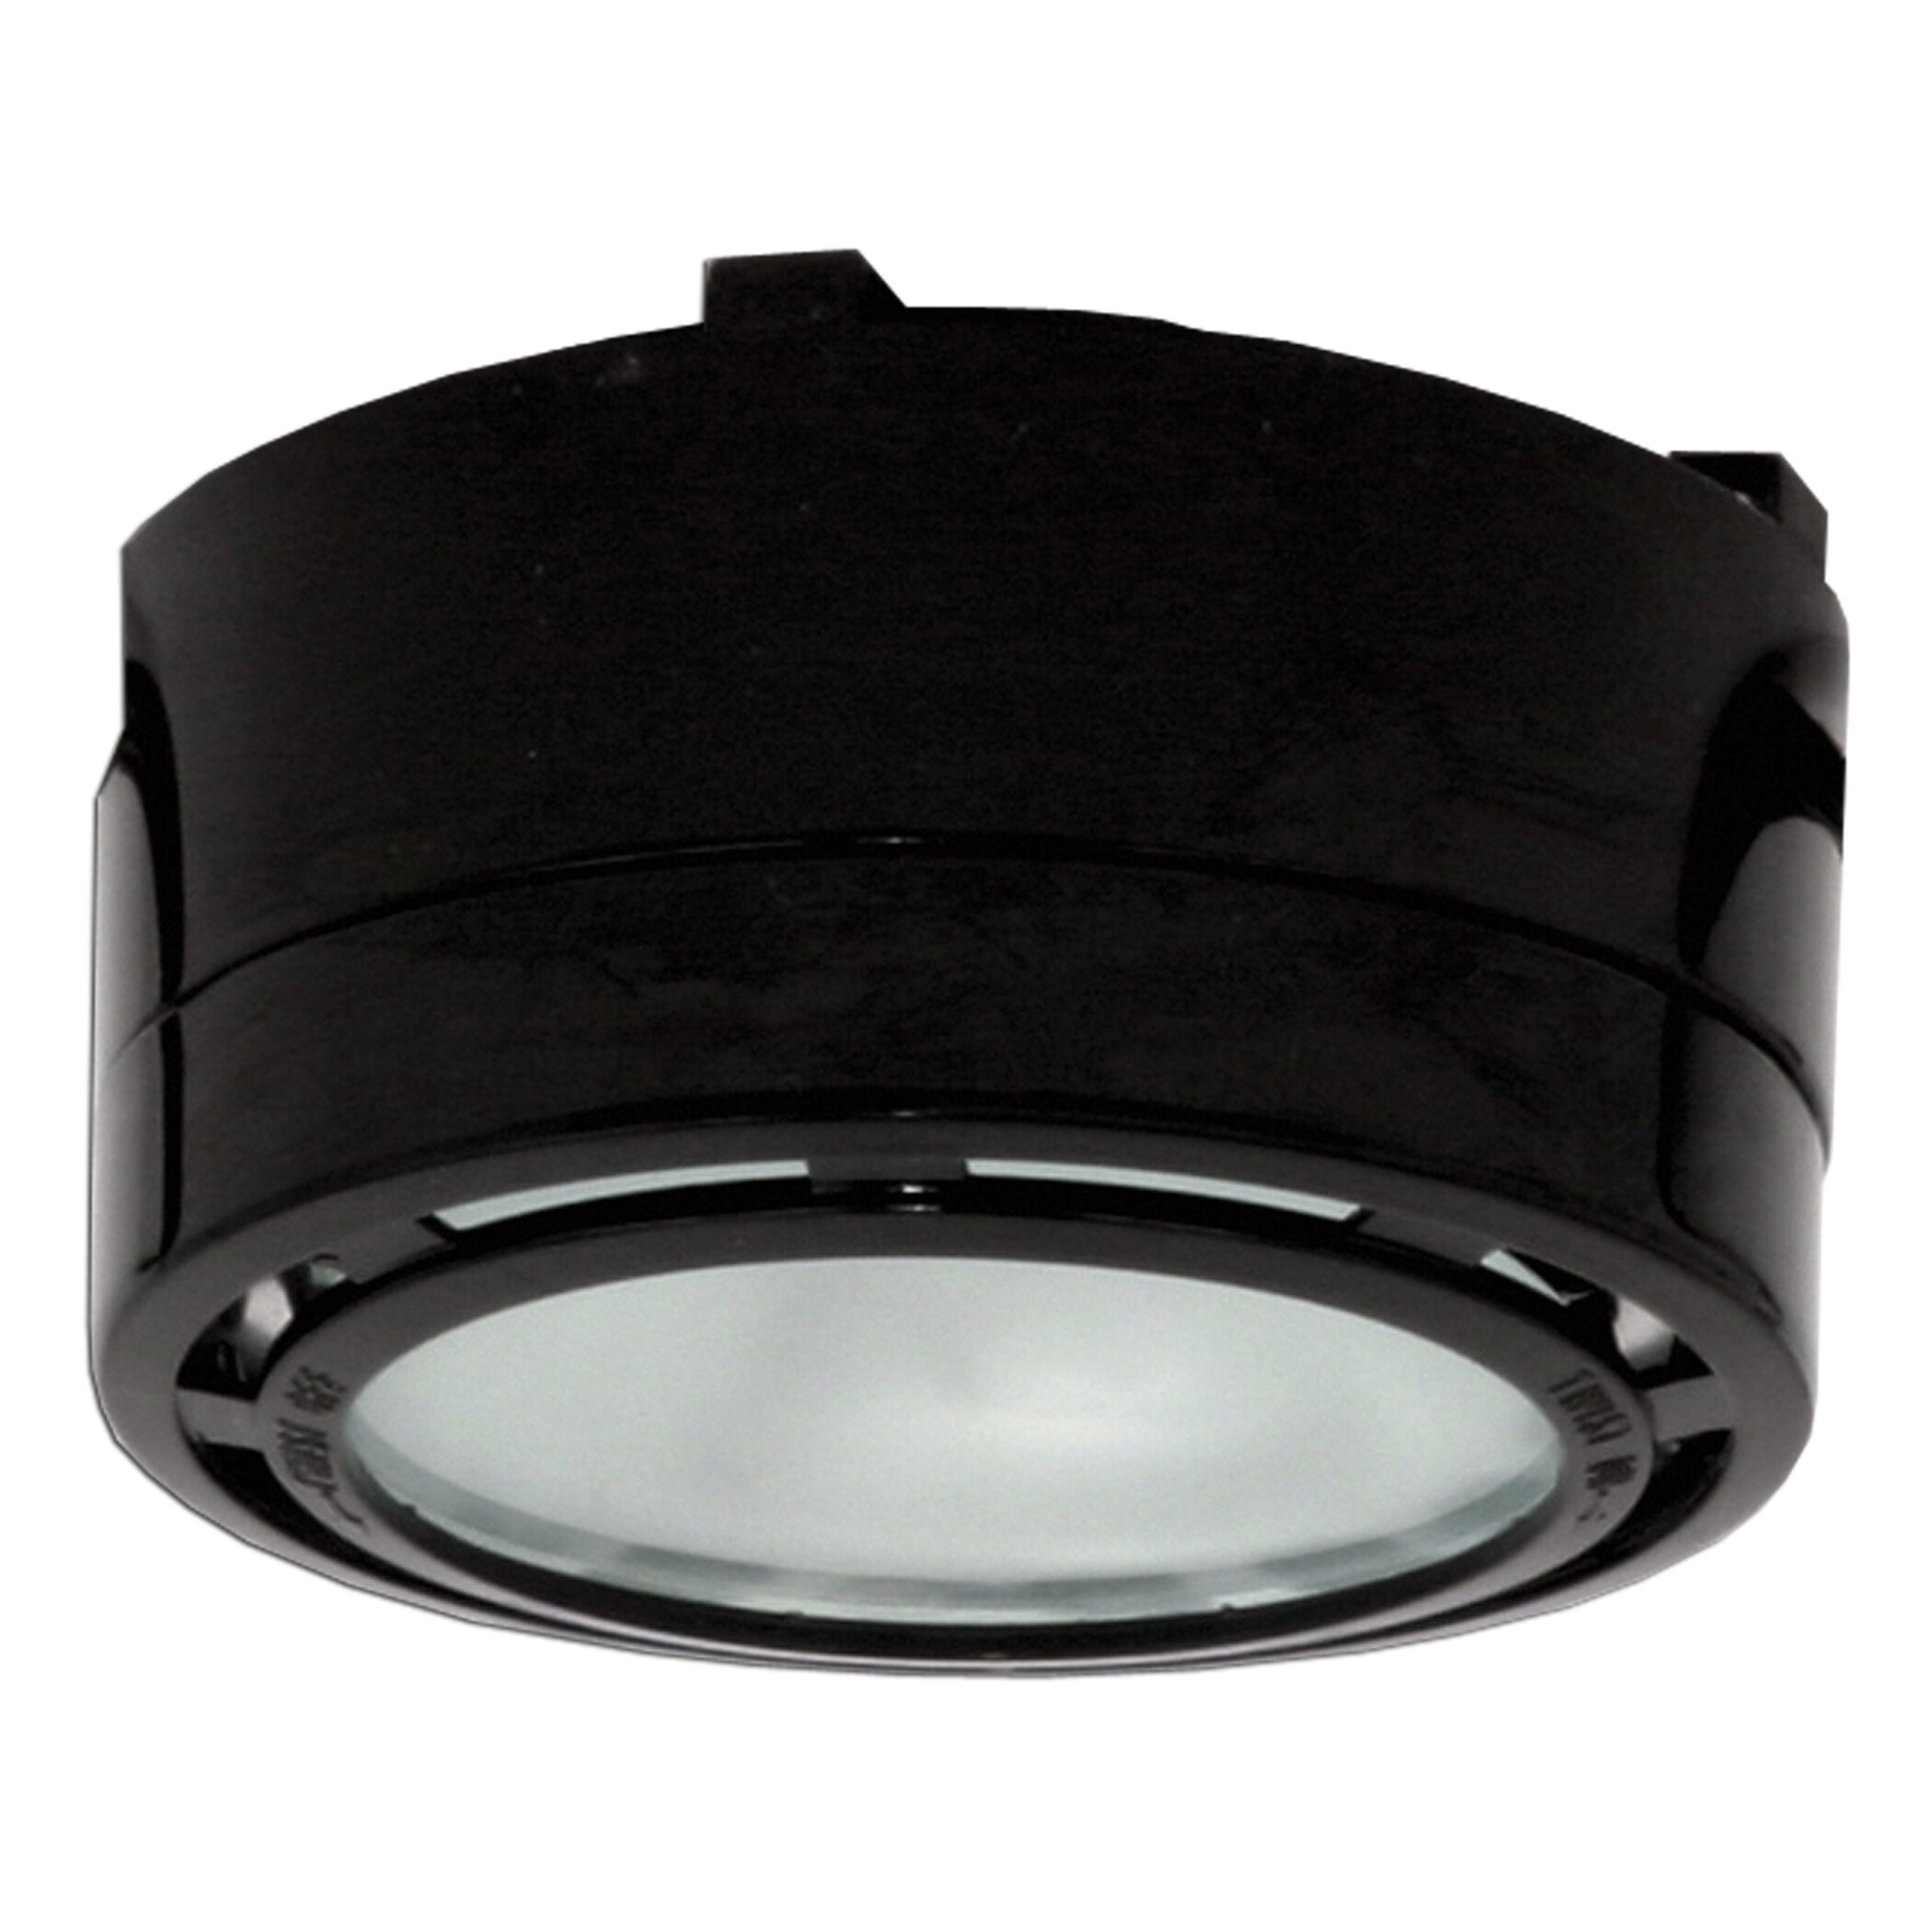 American Lighting LLC Xenon Under Cabinet Puck Light Reviews